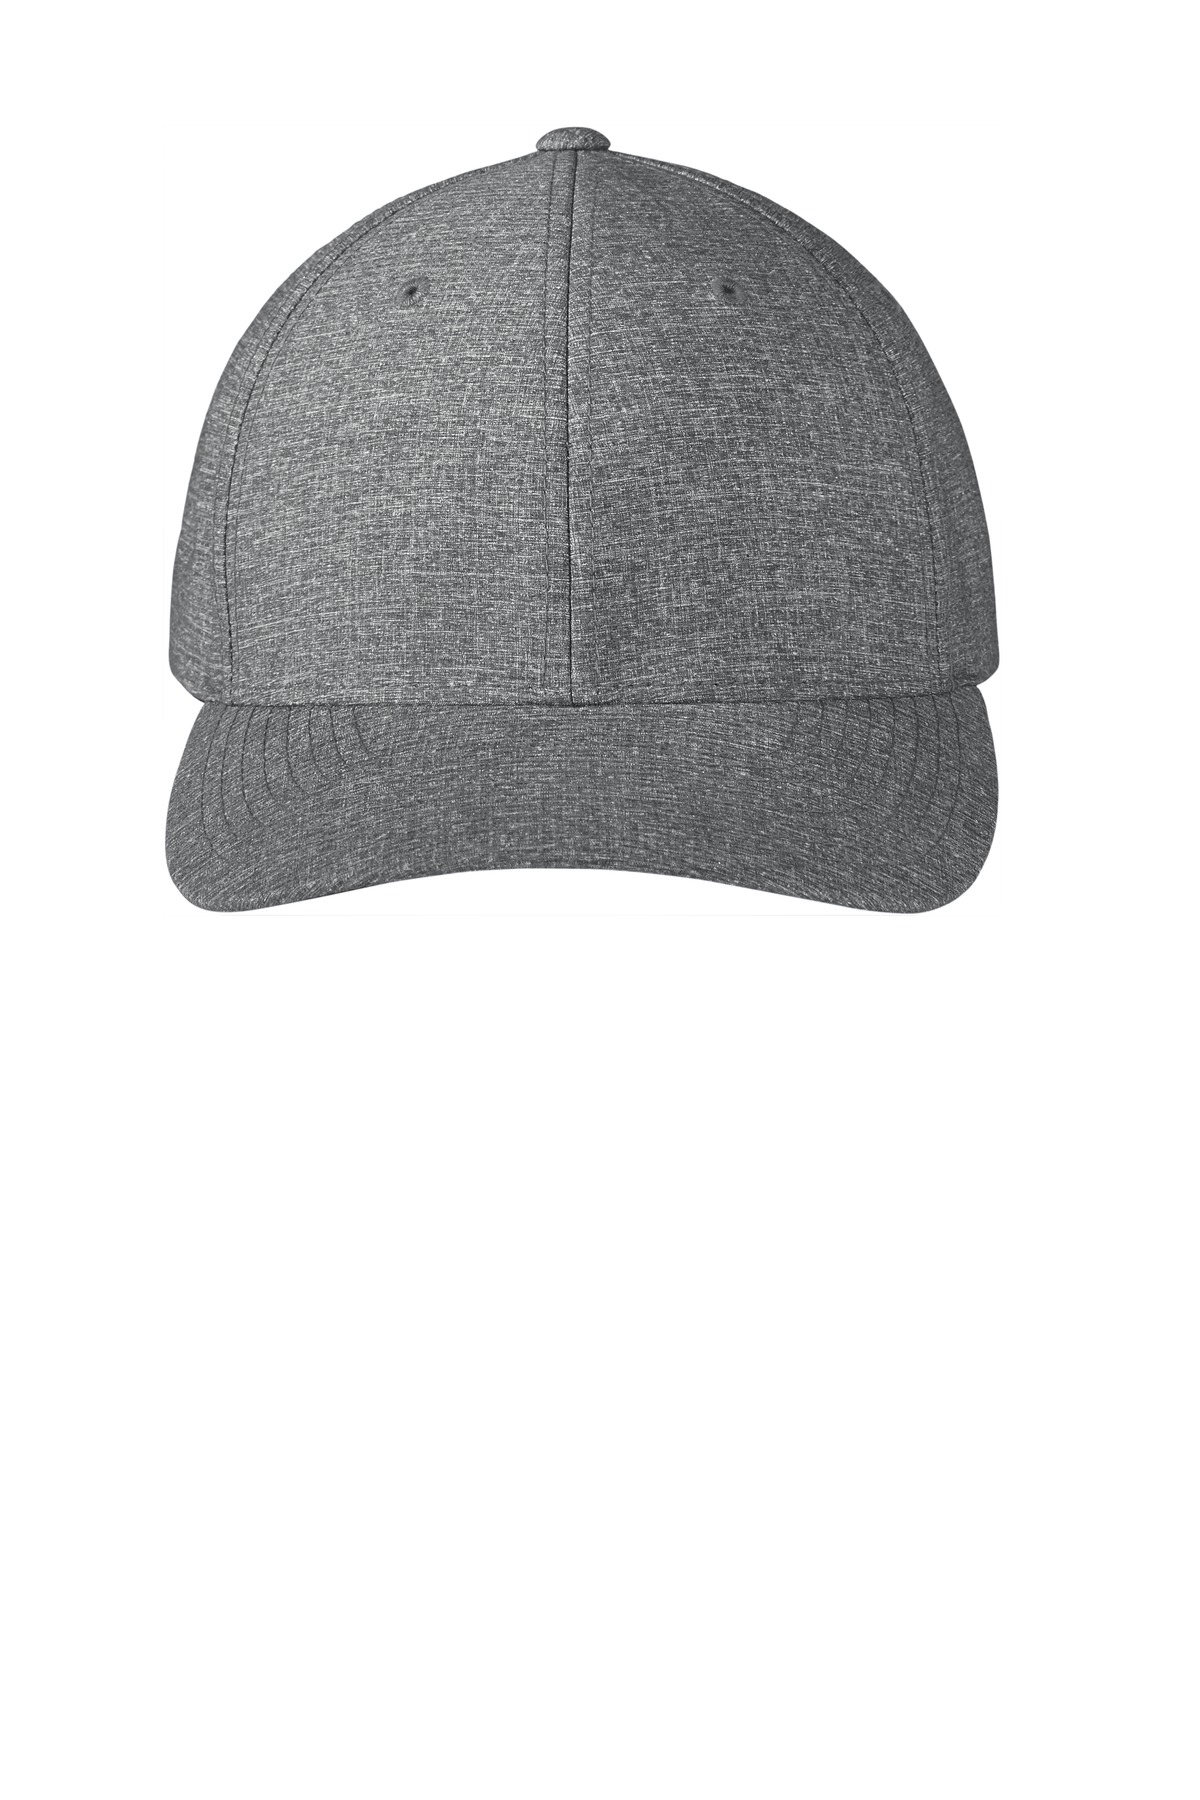 Port Authority  ®  Flexfit 110  ®  Performance Snapback Cap C301 - Heather Grey